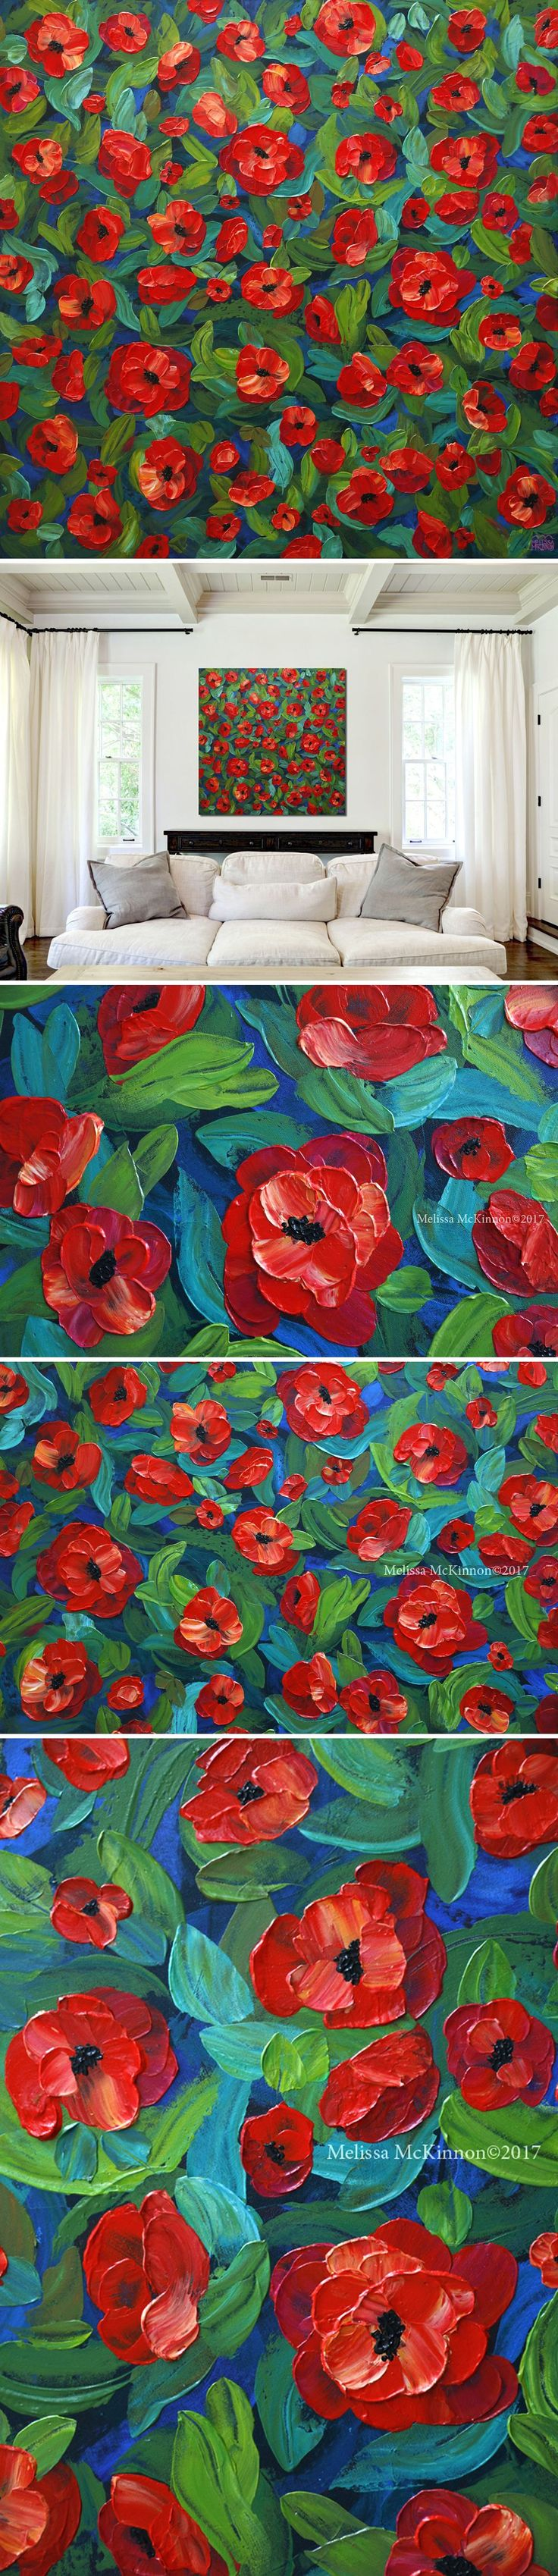 """MELISSA MCKINNON Contemporary Abstract Landscape Artist features BIG COLOURFUL PAINTINGS of Flowers, Aspen & Birch Trees, Rocky Mountains and stunning views of the Canadian prairies, big skies and ocean beaches. Floral Art - Abstract floral painting of red poppy flowers in a field of vibrant green leaves. """"Poppies in Bloom"""" 48""""x48"""""""